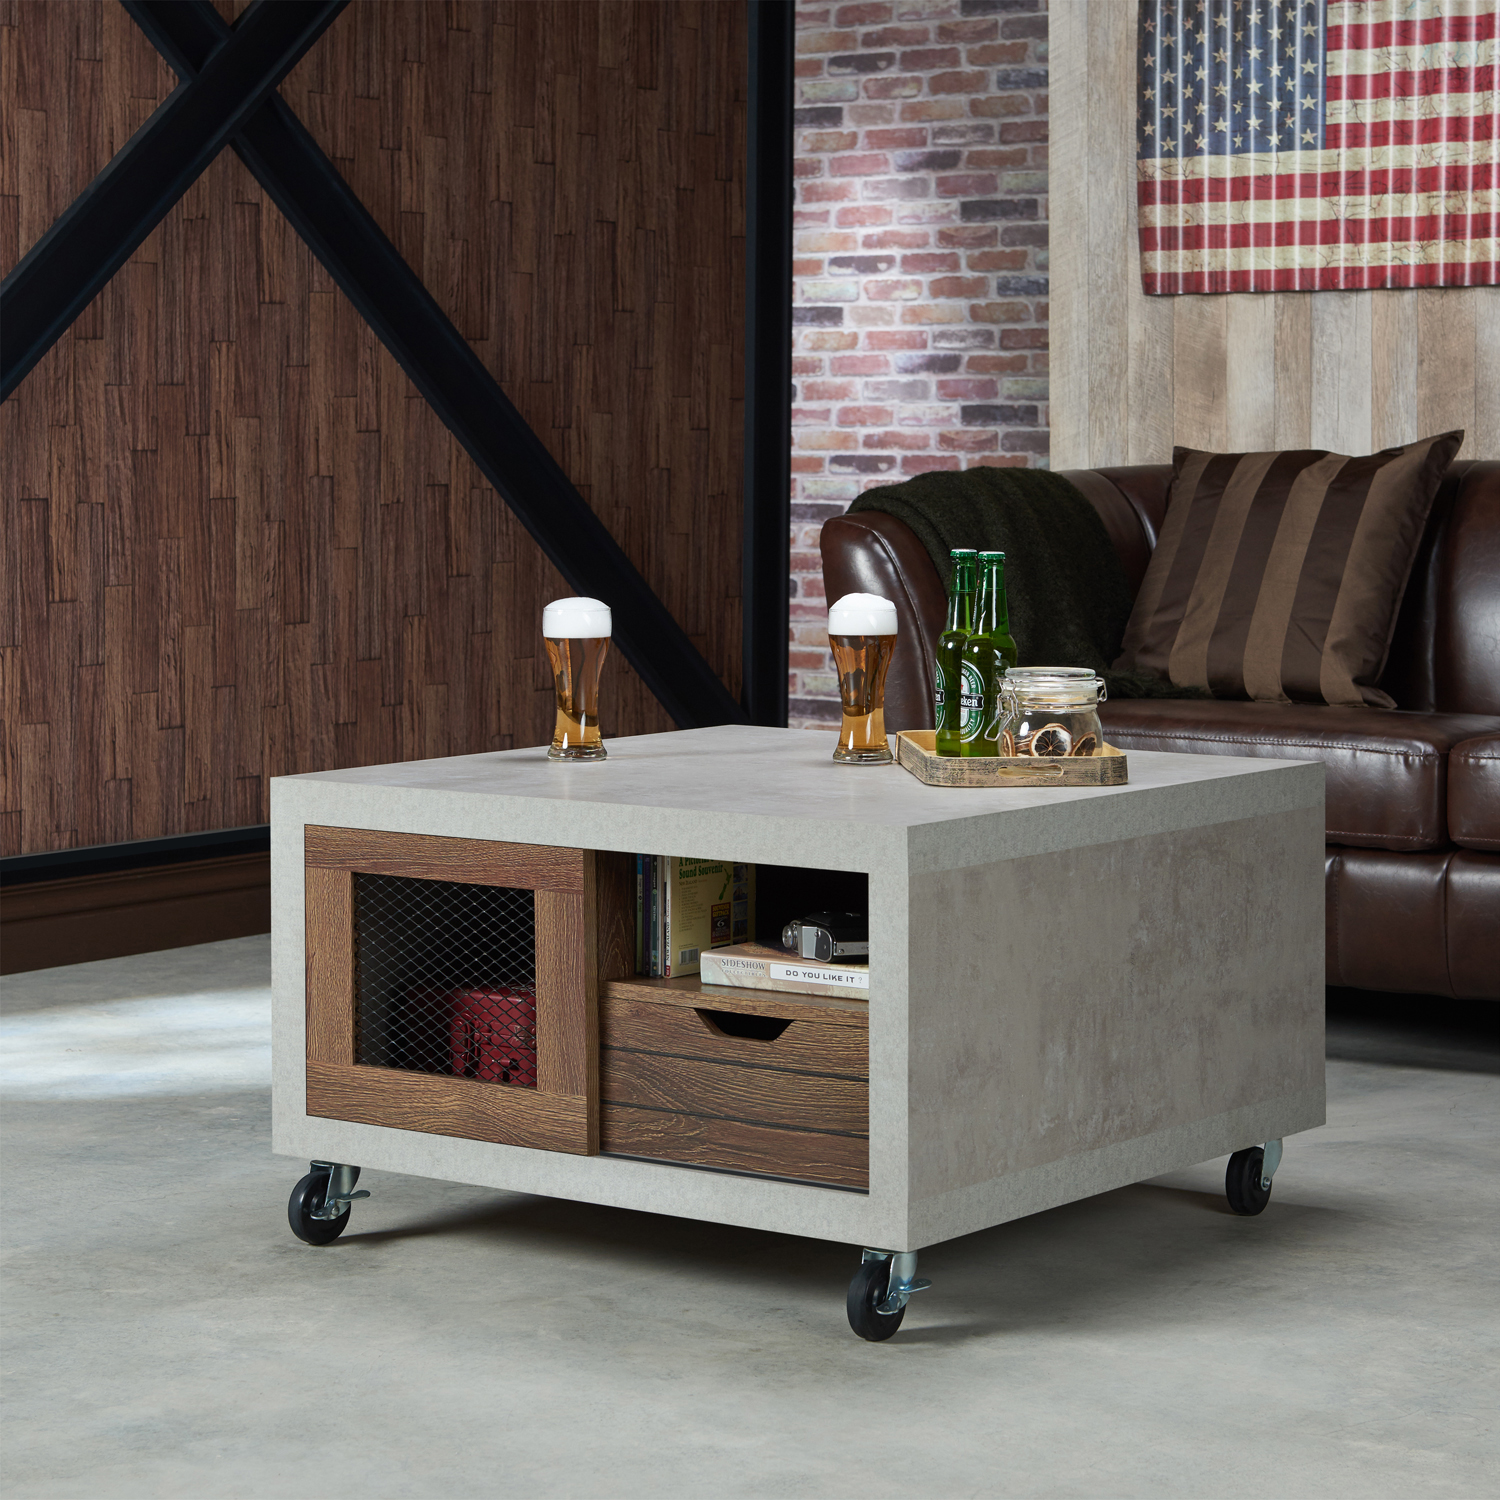 Furniture Of America Greine Contemporary Wood Square Coffee Table Distressed Walnut And Cement Walmart Com Walmart Com